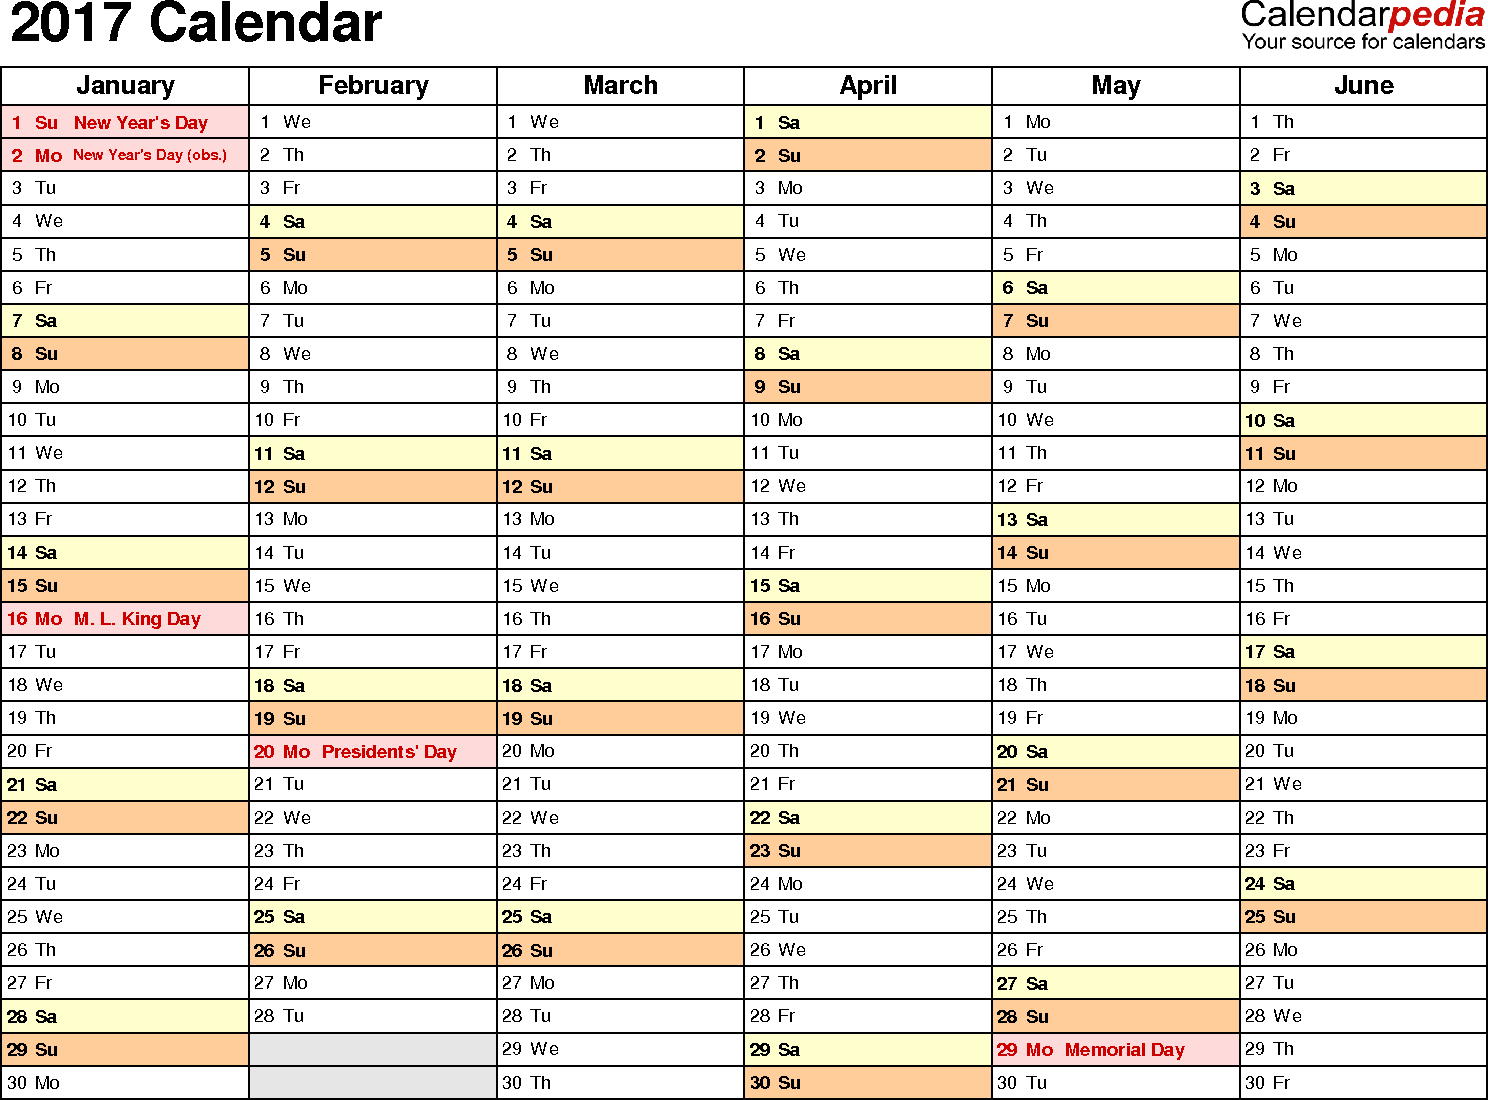 Ediblewildsus  Nice  Calendar  Download  Free Printable Excel Templates Xls With Fair Template   Calendar For Excel Months Horizontally  Pages Landscape Orientation With Captivating Enabling Macros In Excel  Also Excel Duplicates In Addition Networkdays Excel And Excel Tools As Well As How To Find Median In Excel Additionally Subtraction Function In Excel From Calendarpediacom With Ediblewildsus  Fair  Calendar  Download  Free Printable Excel Templates Xls With Captivating Template   Calendar For Excel Months Horizontally  Pages Landscape Orientation And Nice Enabling Macros In Excel  Also Excel Duplicates In Addition Networkdays Excel From Calendarpediacom